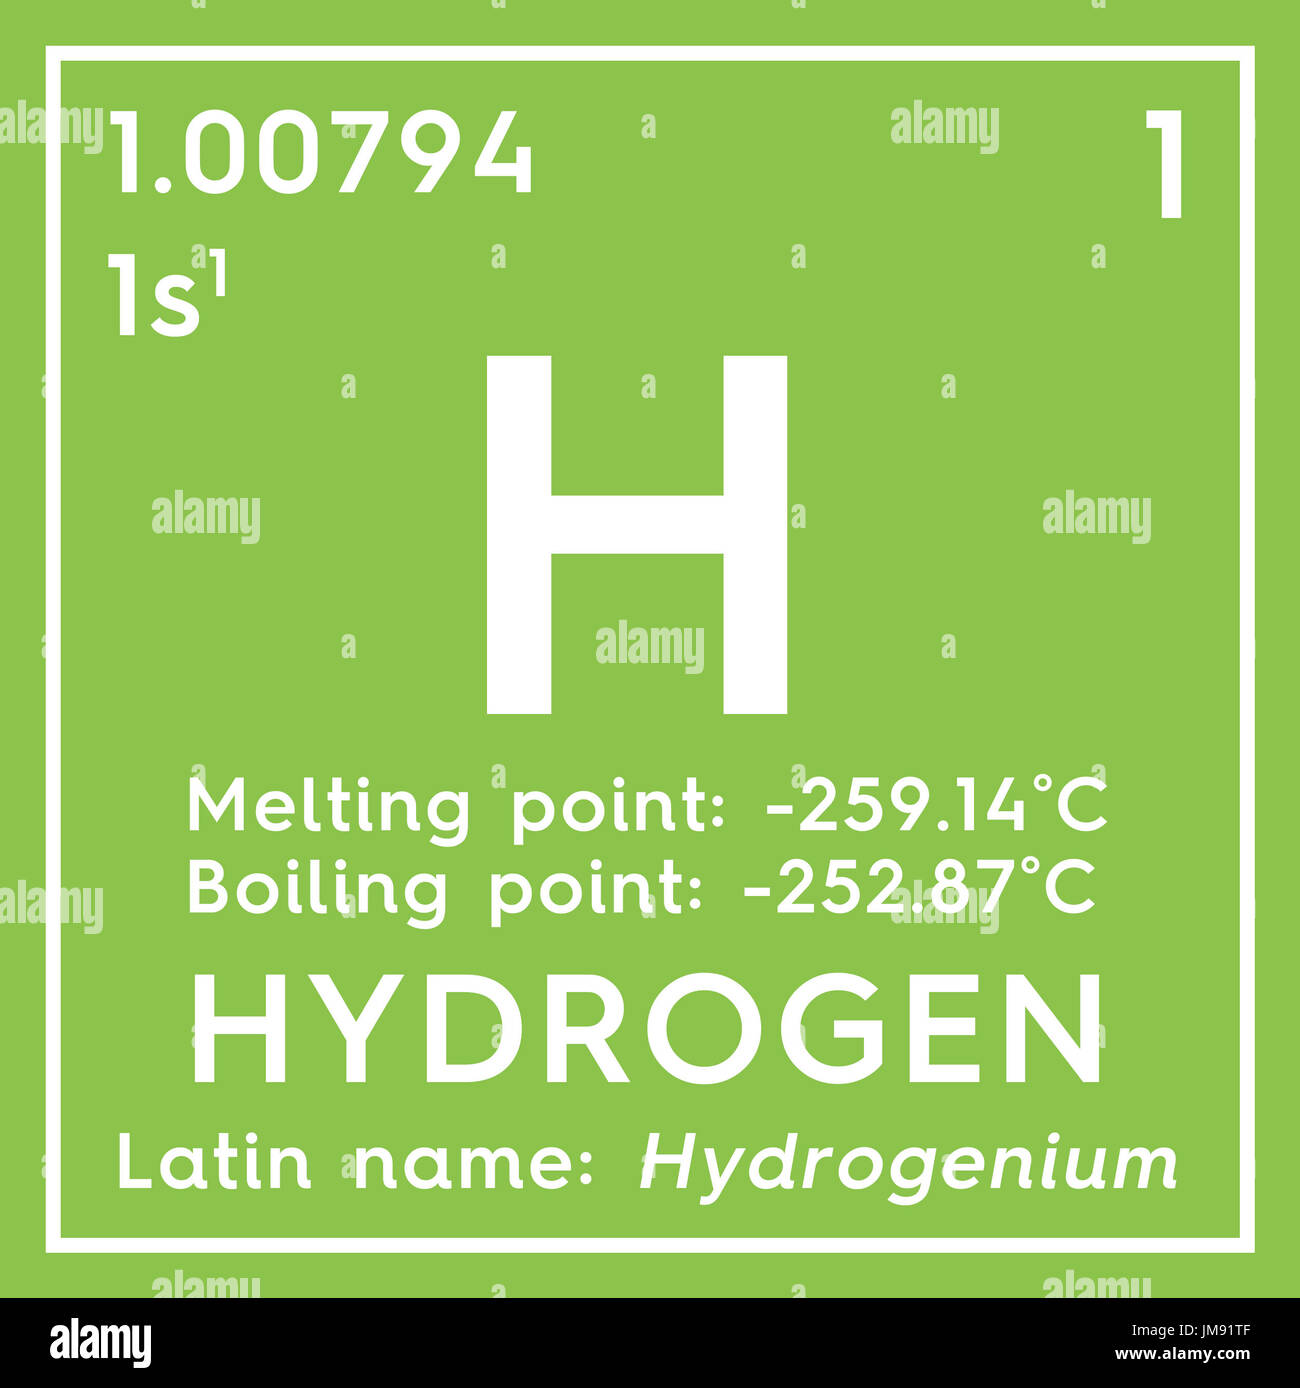 Hydrogen chemical element periodic table stock photos hydrogen hydrogen other nonmetals chemical element of mendeleevs periodic table hydrogen in square cube gamestrikefo Choice Image